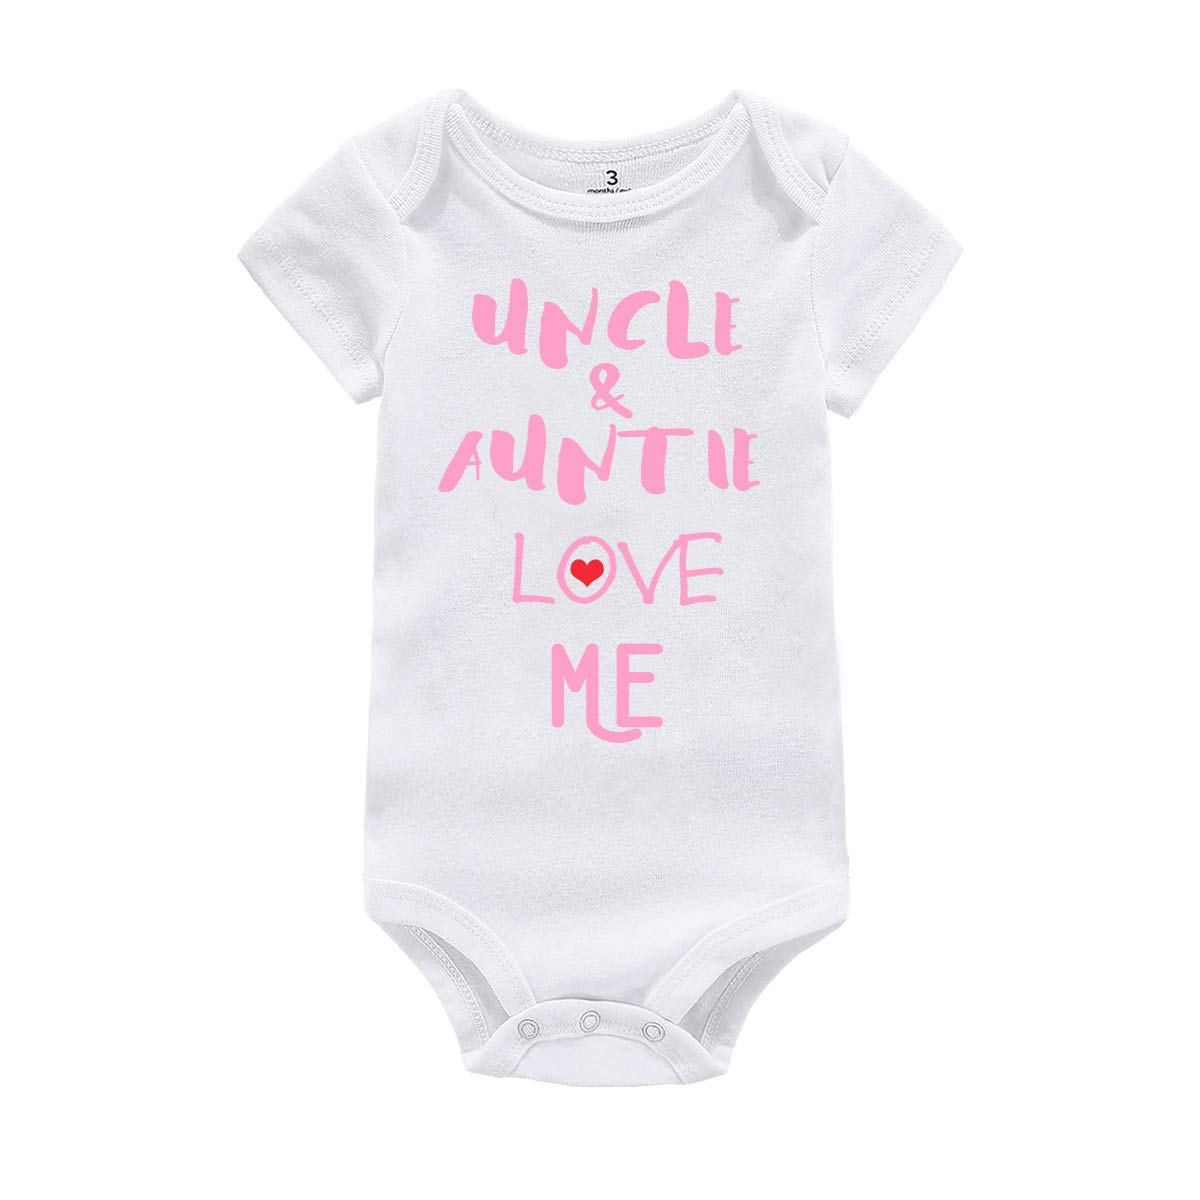 Amberetech Baby Boy Girl Romper Outfit Uncle Auntie Love Me Print Newborn Baby Jumpsuit Clothes (Uncle Auntie - Pink, Tag 12 (for 9-12 Months)) by Amberetech